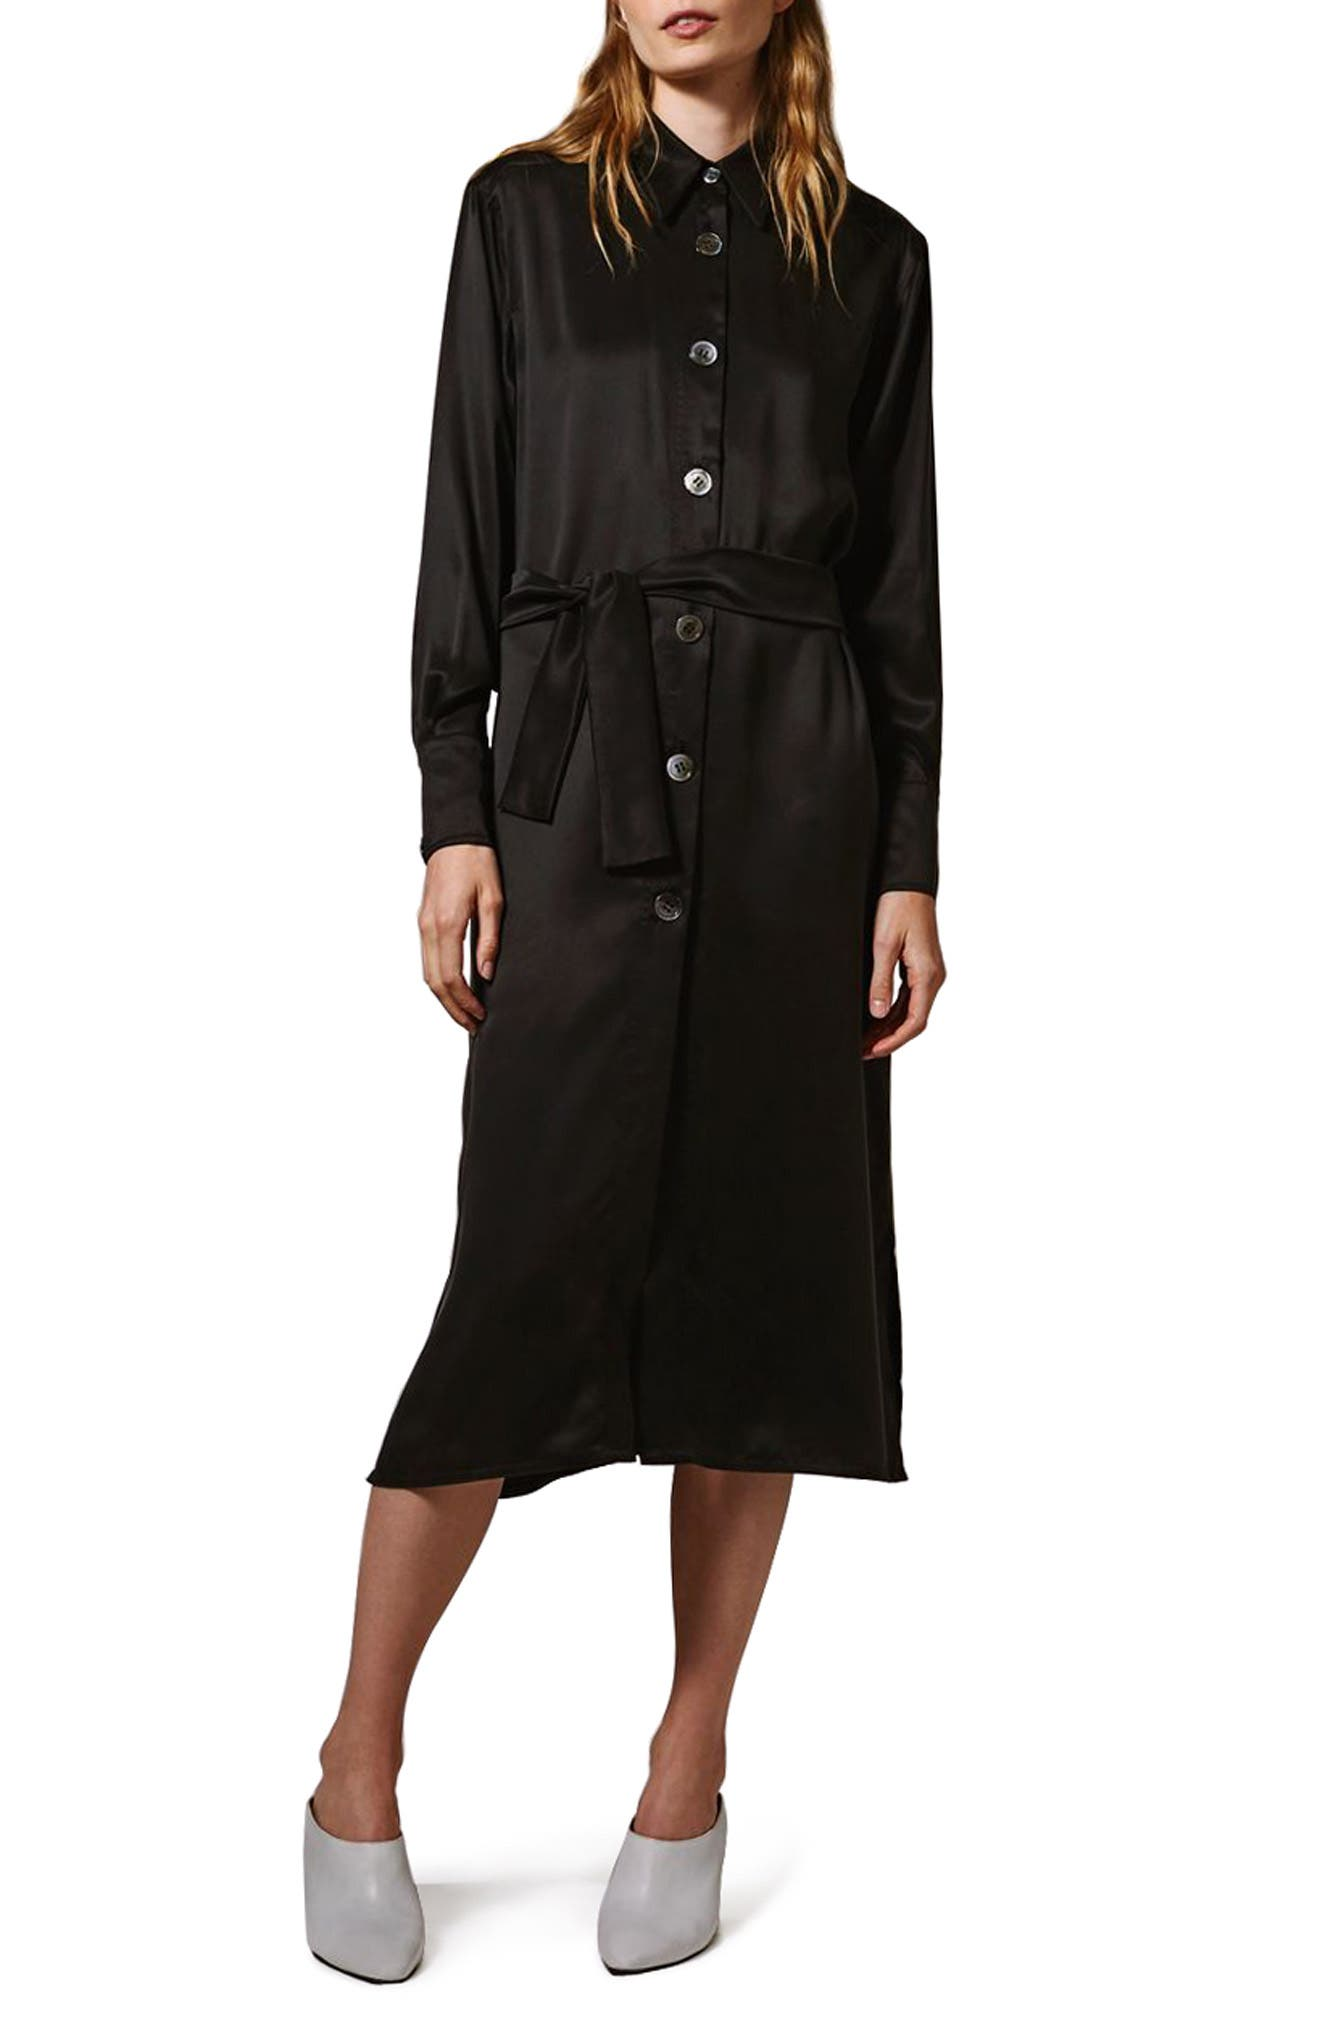 Topshop Boutique Sandwash Belted Silk Shirtdress